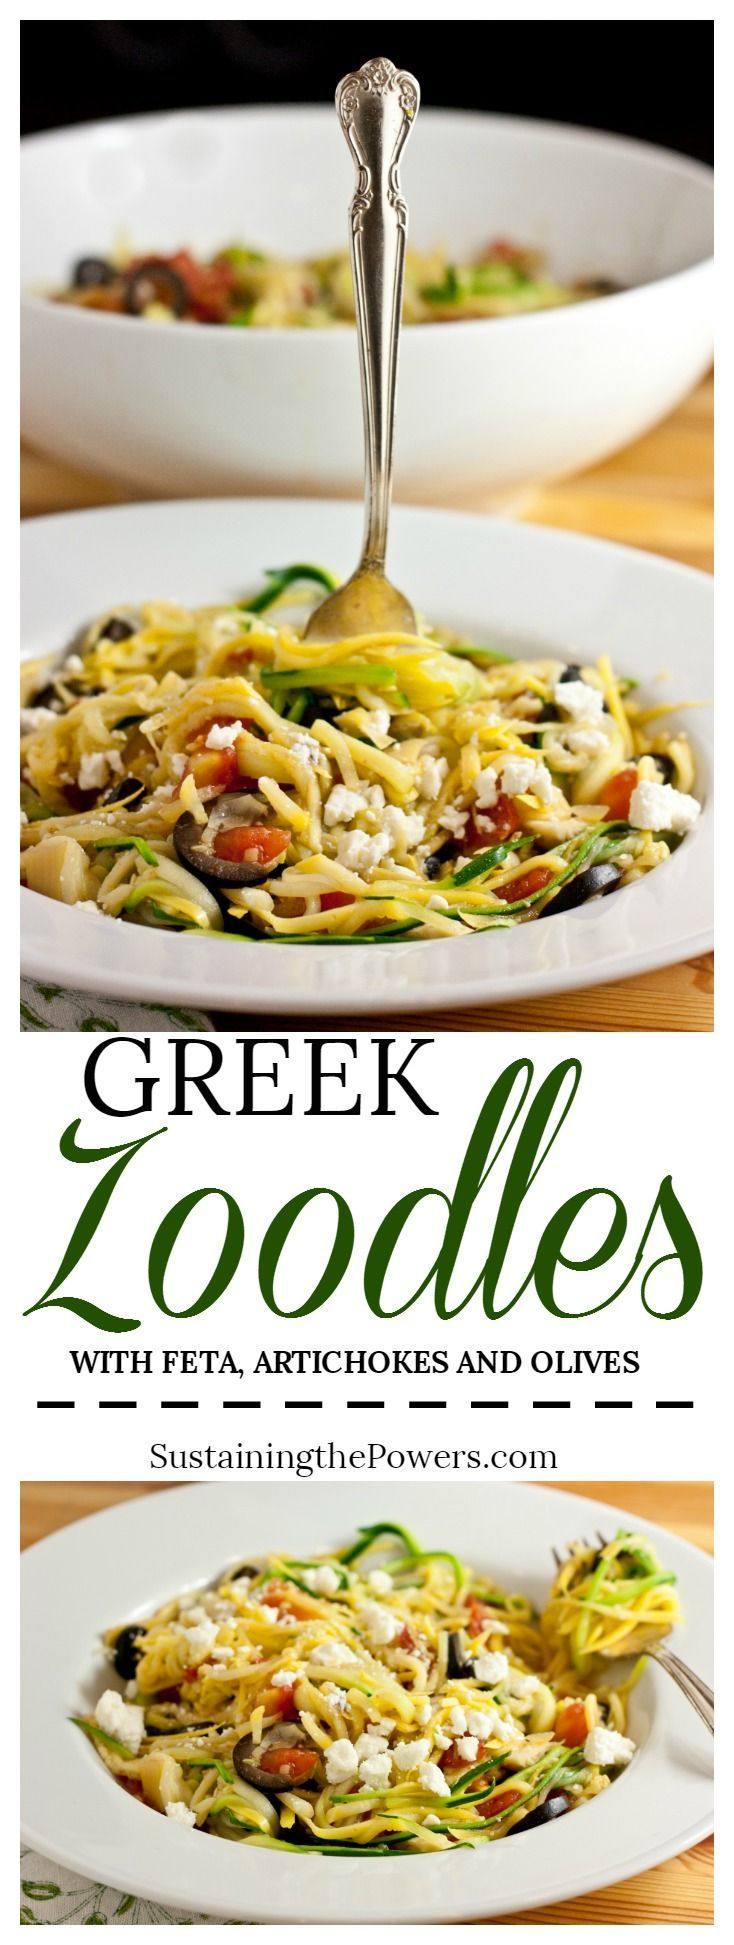 How to Make Greek Zucchini Noodles   These zoodles are one of my most popular recipes. They taste like an indulgent pasta dish, but the spiralized zucchini noodles mean this is packed full of gluten-free veggies instead! Click through now to get the recipe!